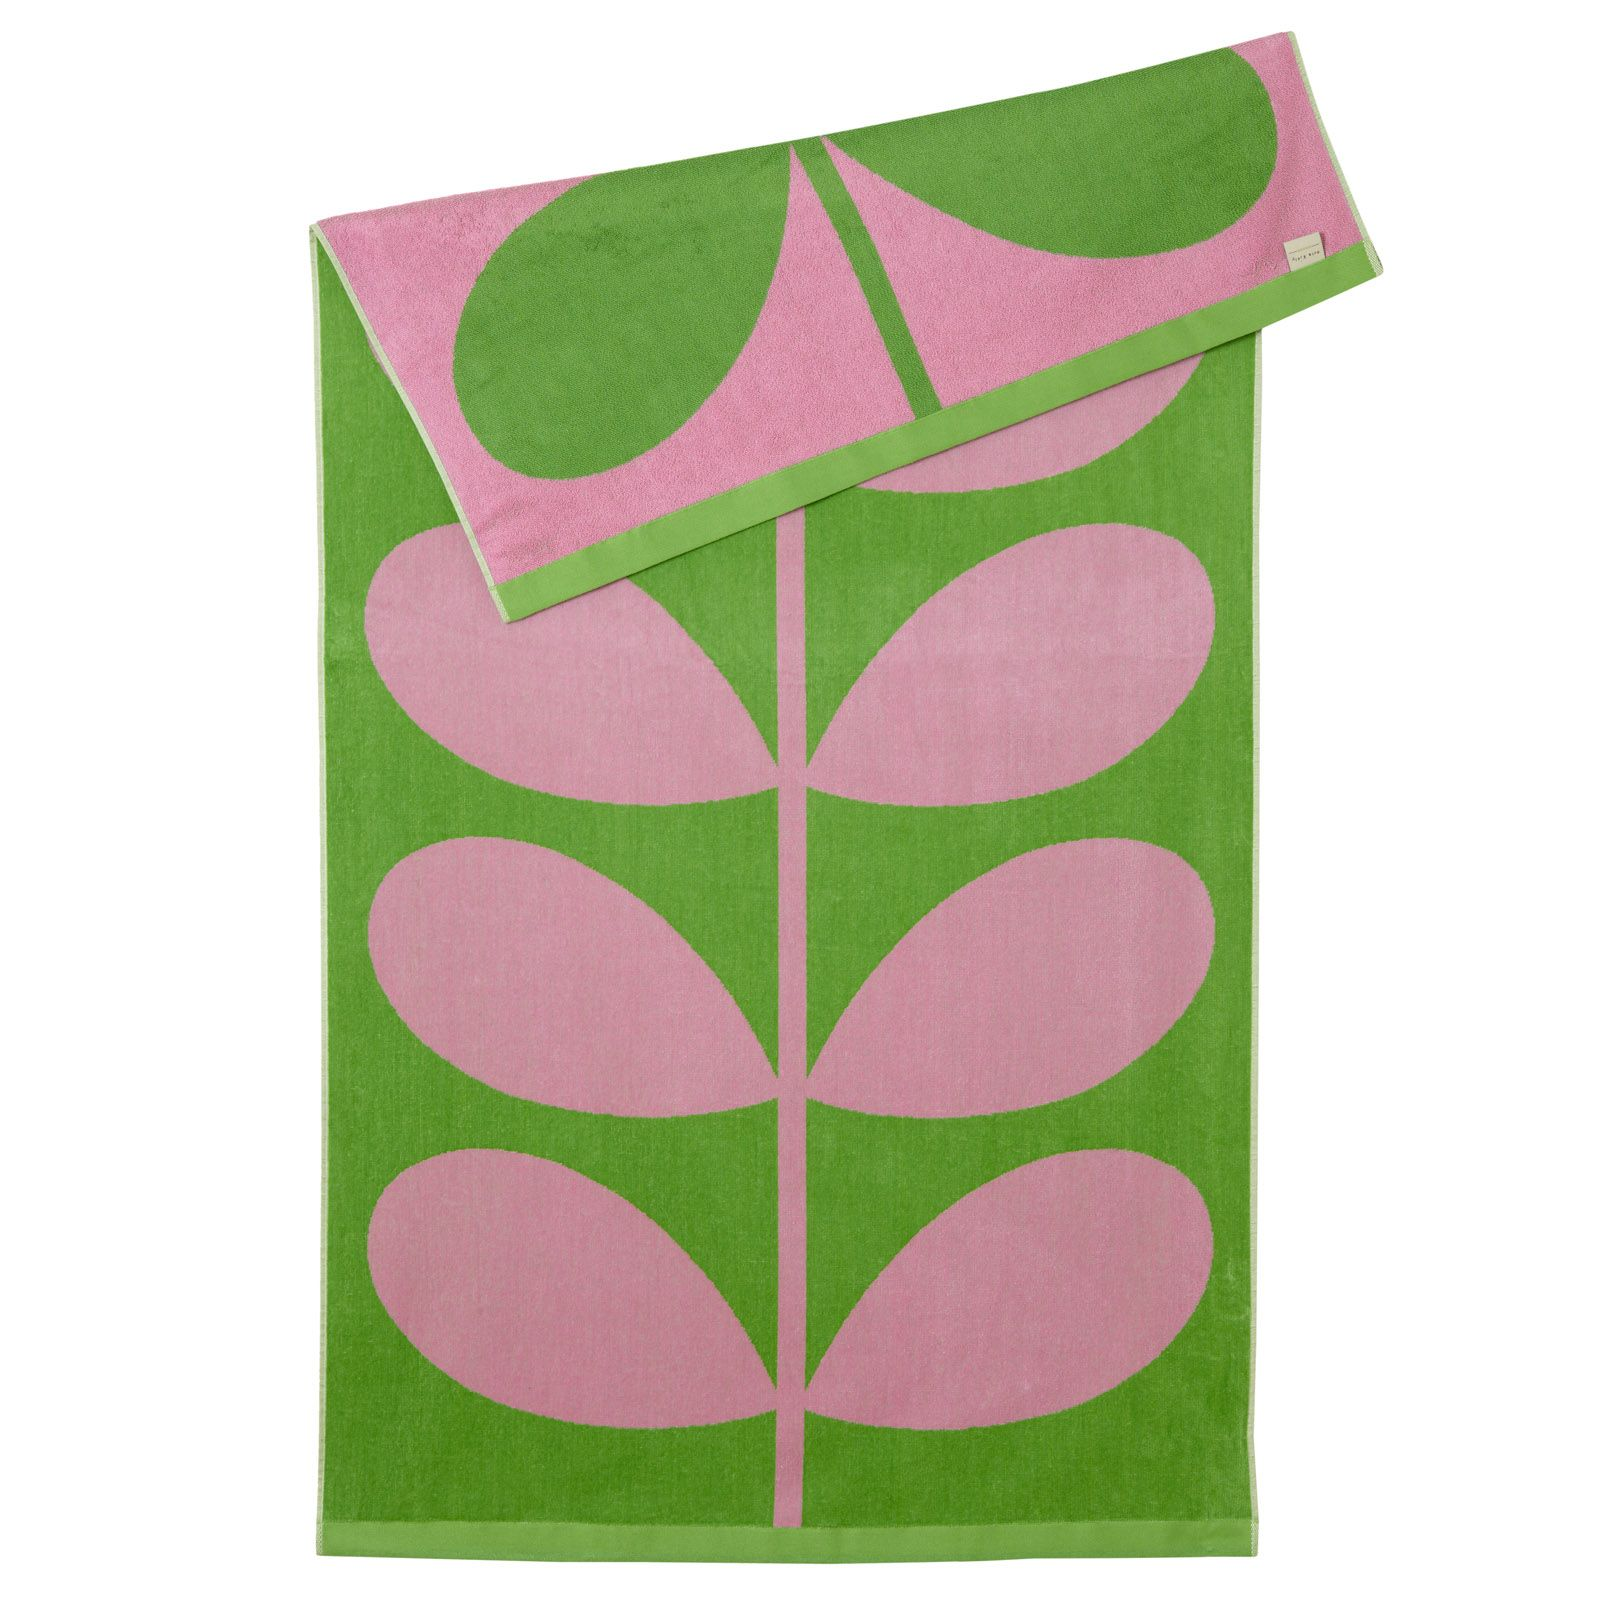 Orla Kiely Iconic Bags Clothing Accessories And Home Pink